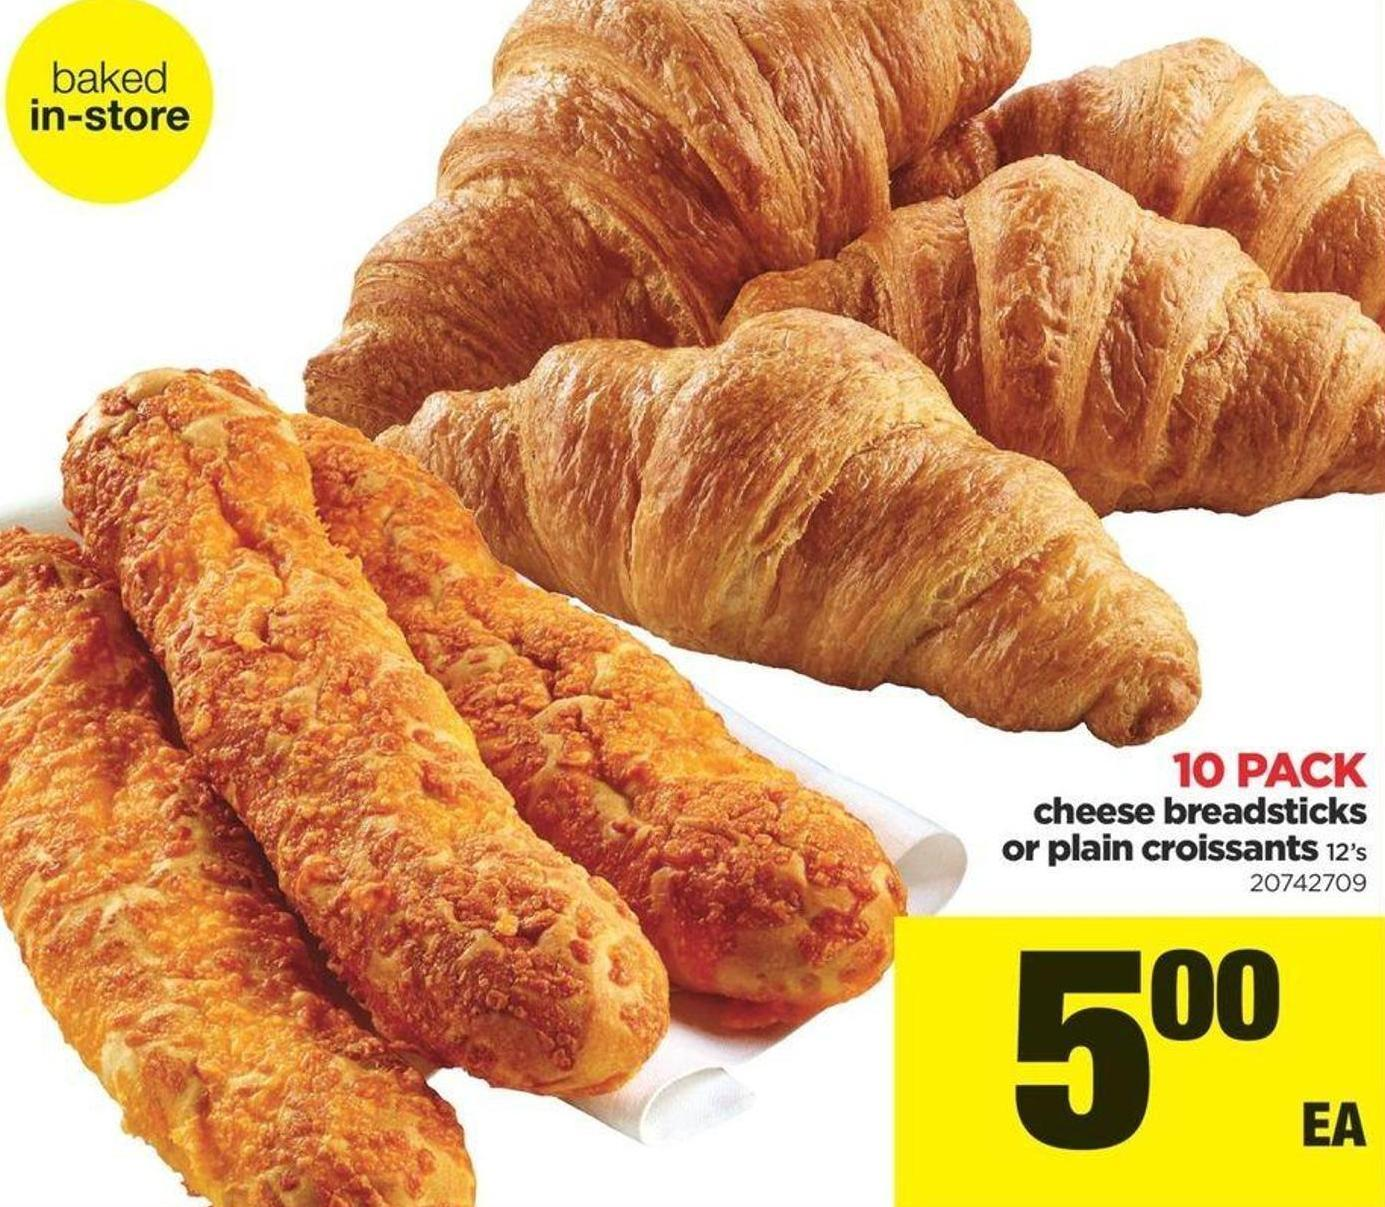 Cheese Breadsticks Or Plain Croissants - 12's - 10 Pack